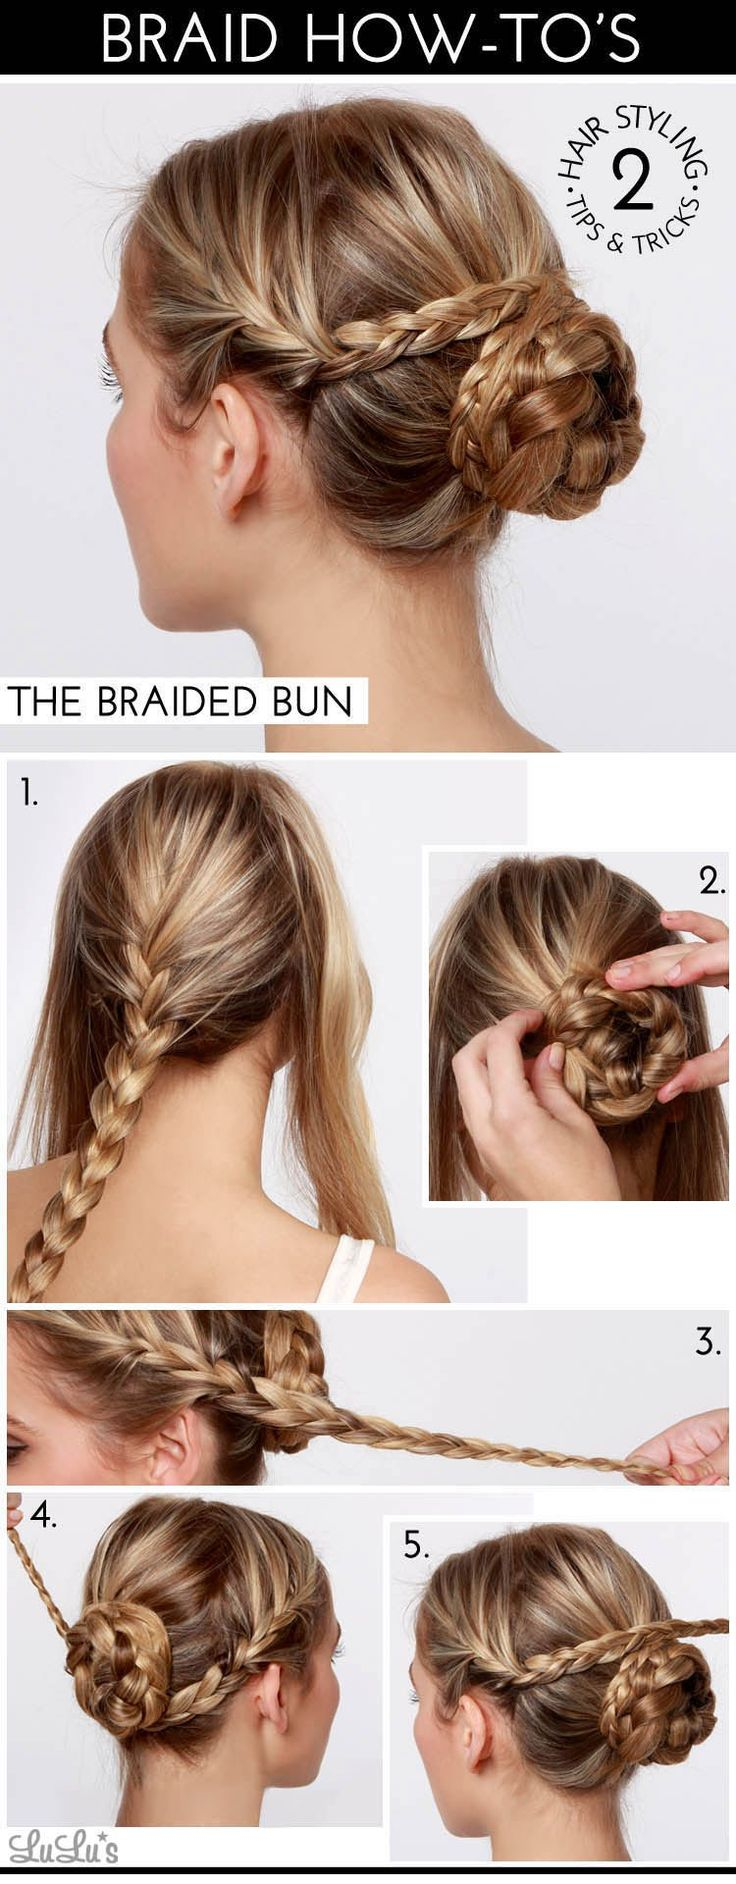 1000 Ideas About Les Tresses On Pinterest Braids Coiffures And